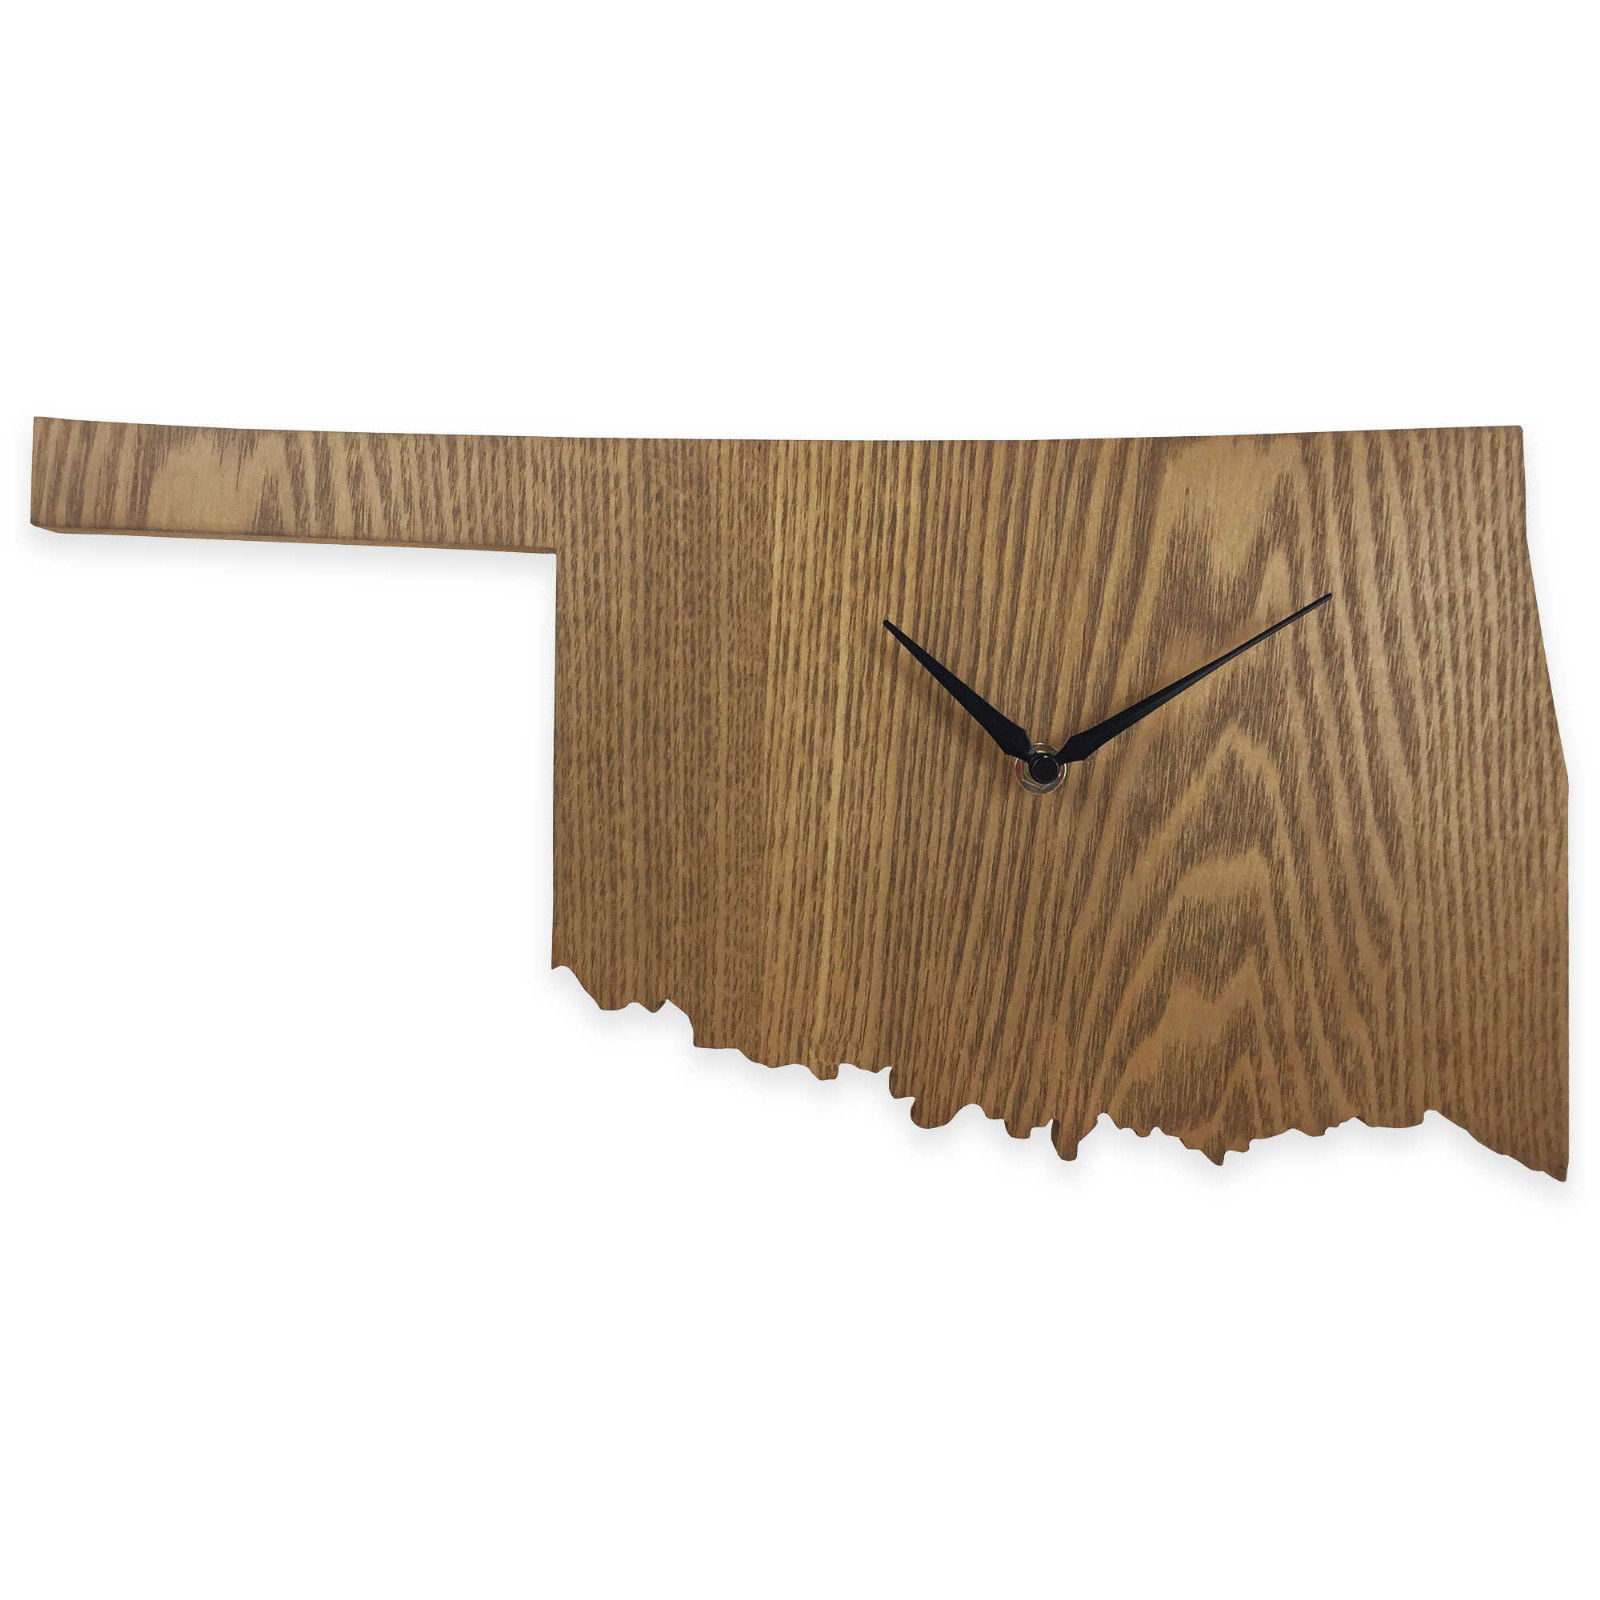 Oklahoma State Shaped Wood Grain Wall Clock Collection